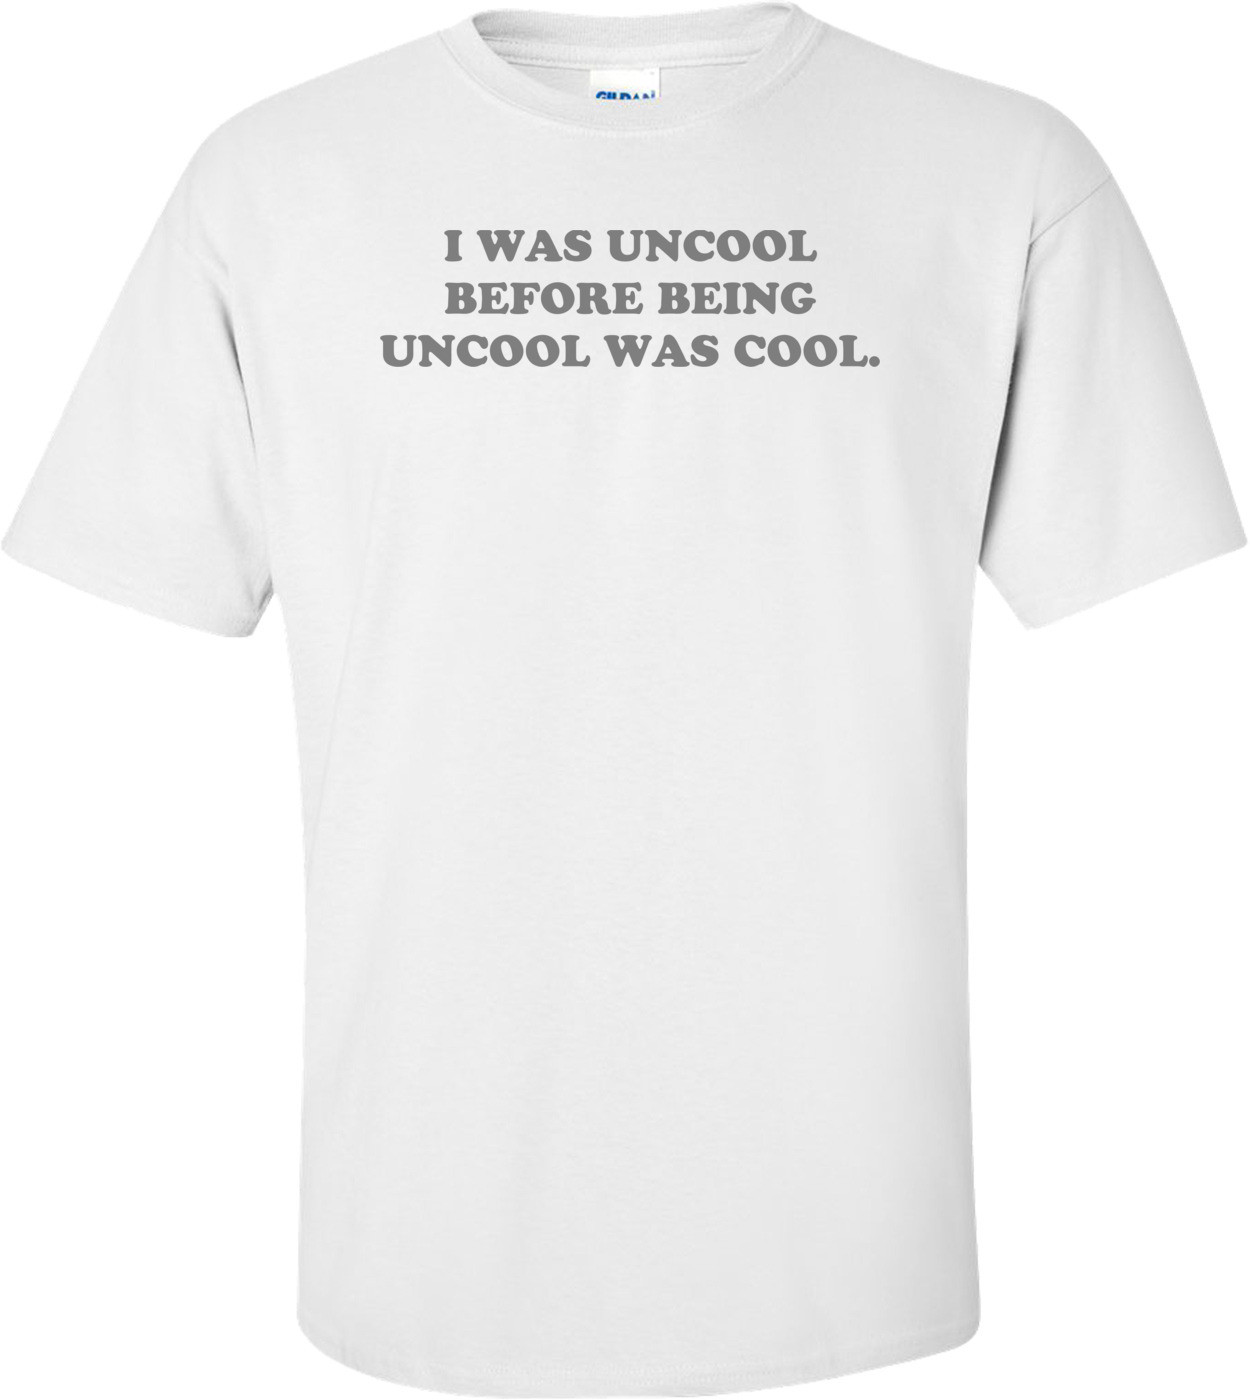 I WAS UNCOOL BEFORE BEING UNCOOL WAS COOL. Shirt